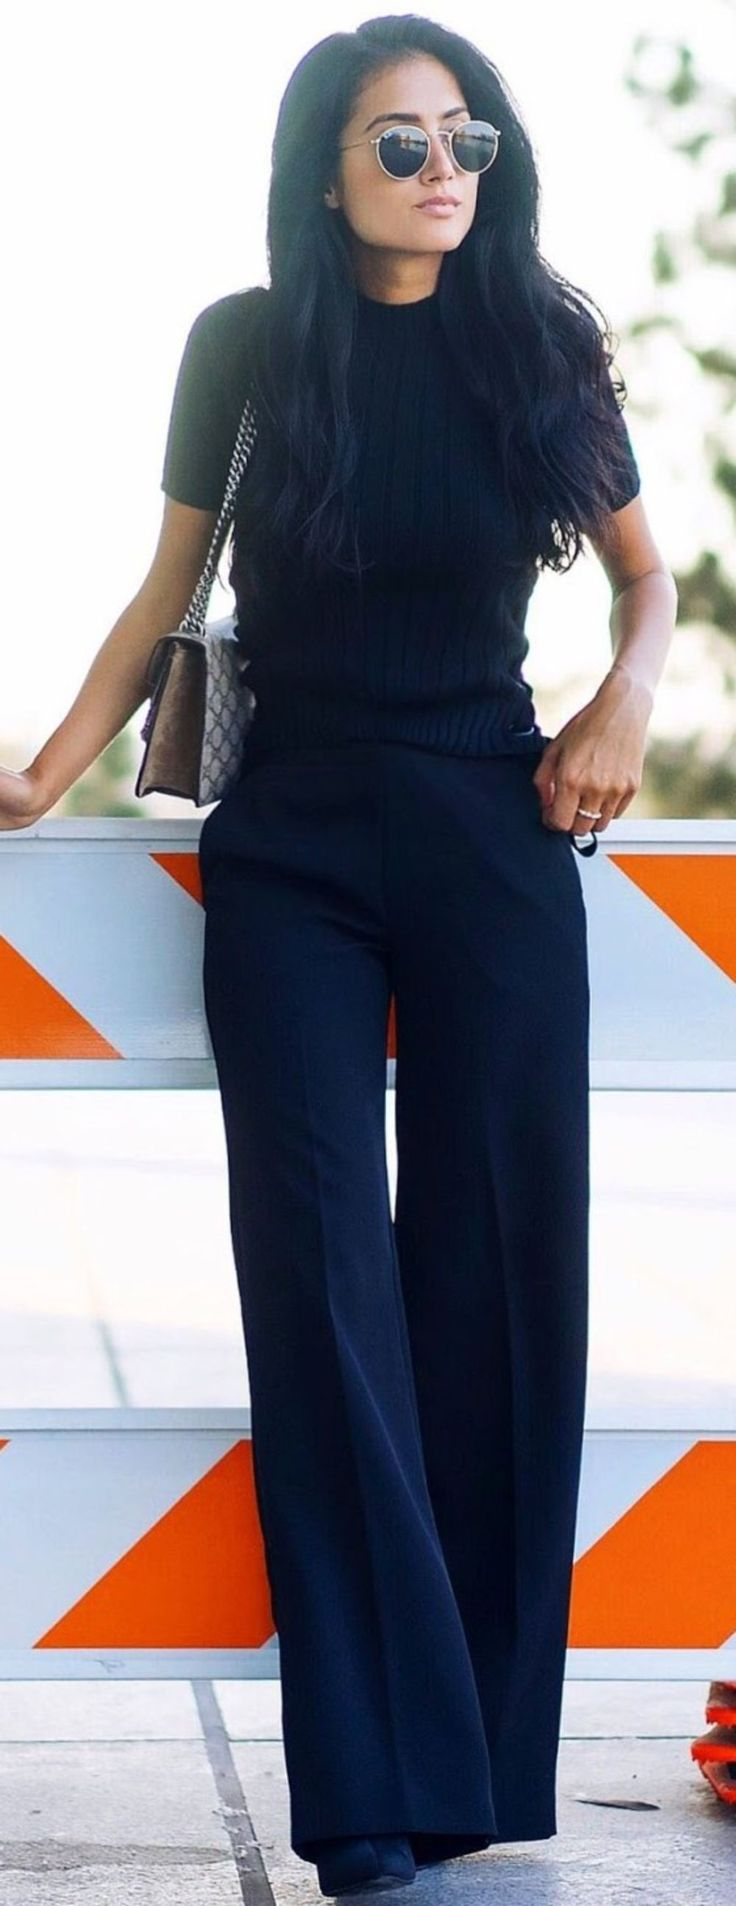 Awesome 150 Fashionable Work Outfits for Women 2017 from https://www.fashionetter.com/2017/07/01/150-fashionable-work-outfits-women-2017/ https://bellanblue.com/collections/new